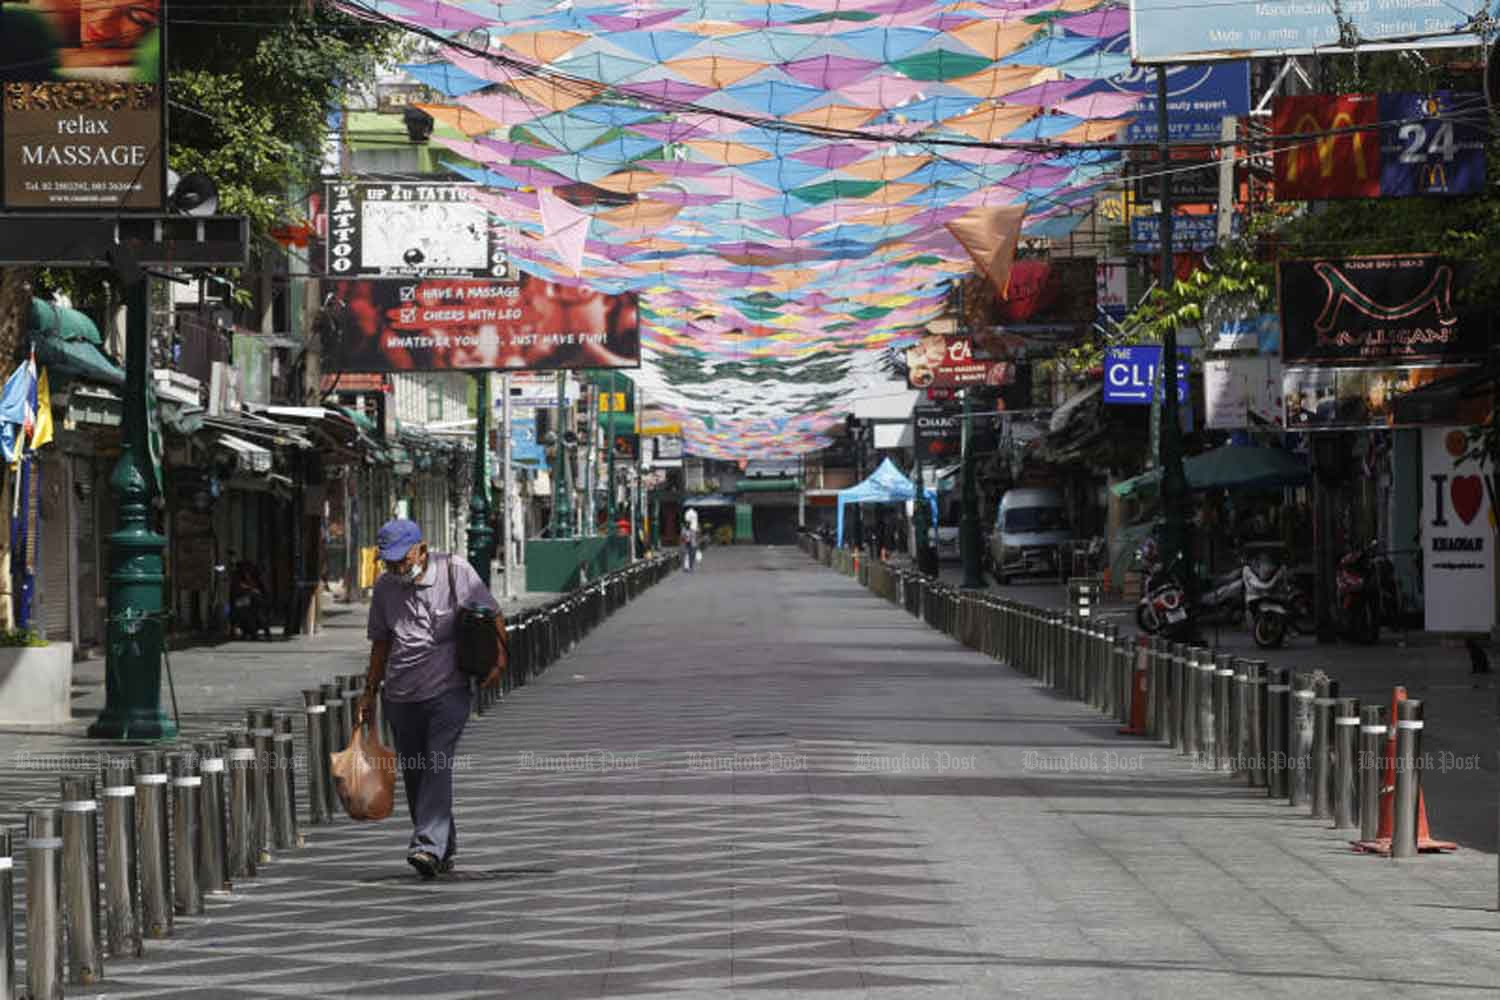 A lone man walks along a deserted street in normally bustling Khao San Bangkok on Sunday. The third wave of Covid-19 has led to strict controls that have brought tourism in the area to a halt. (Photo: Apichit Jinakul)